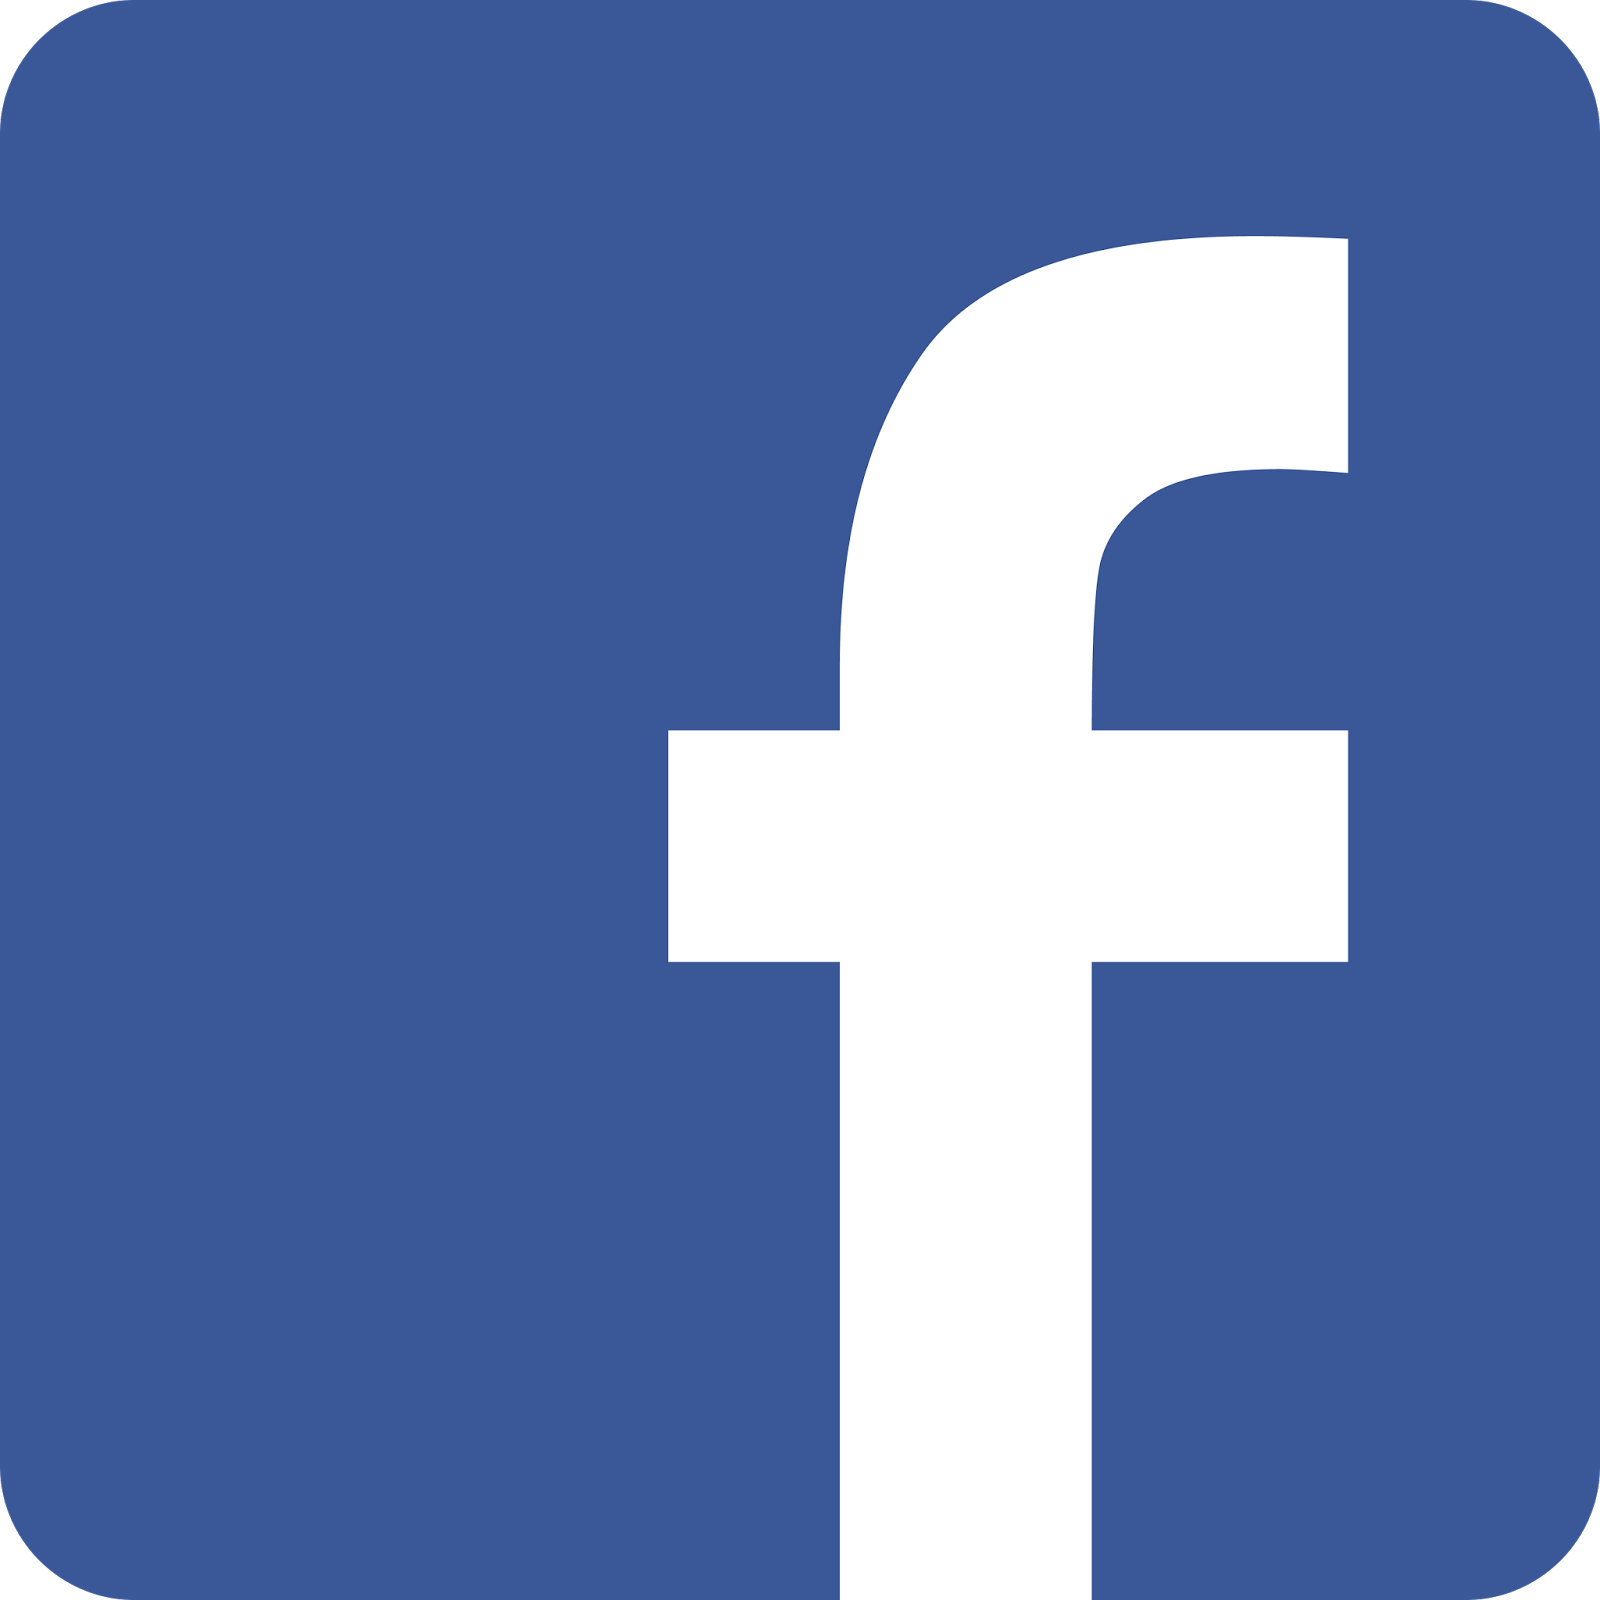 Image result for facebook logo free